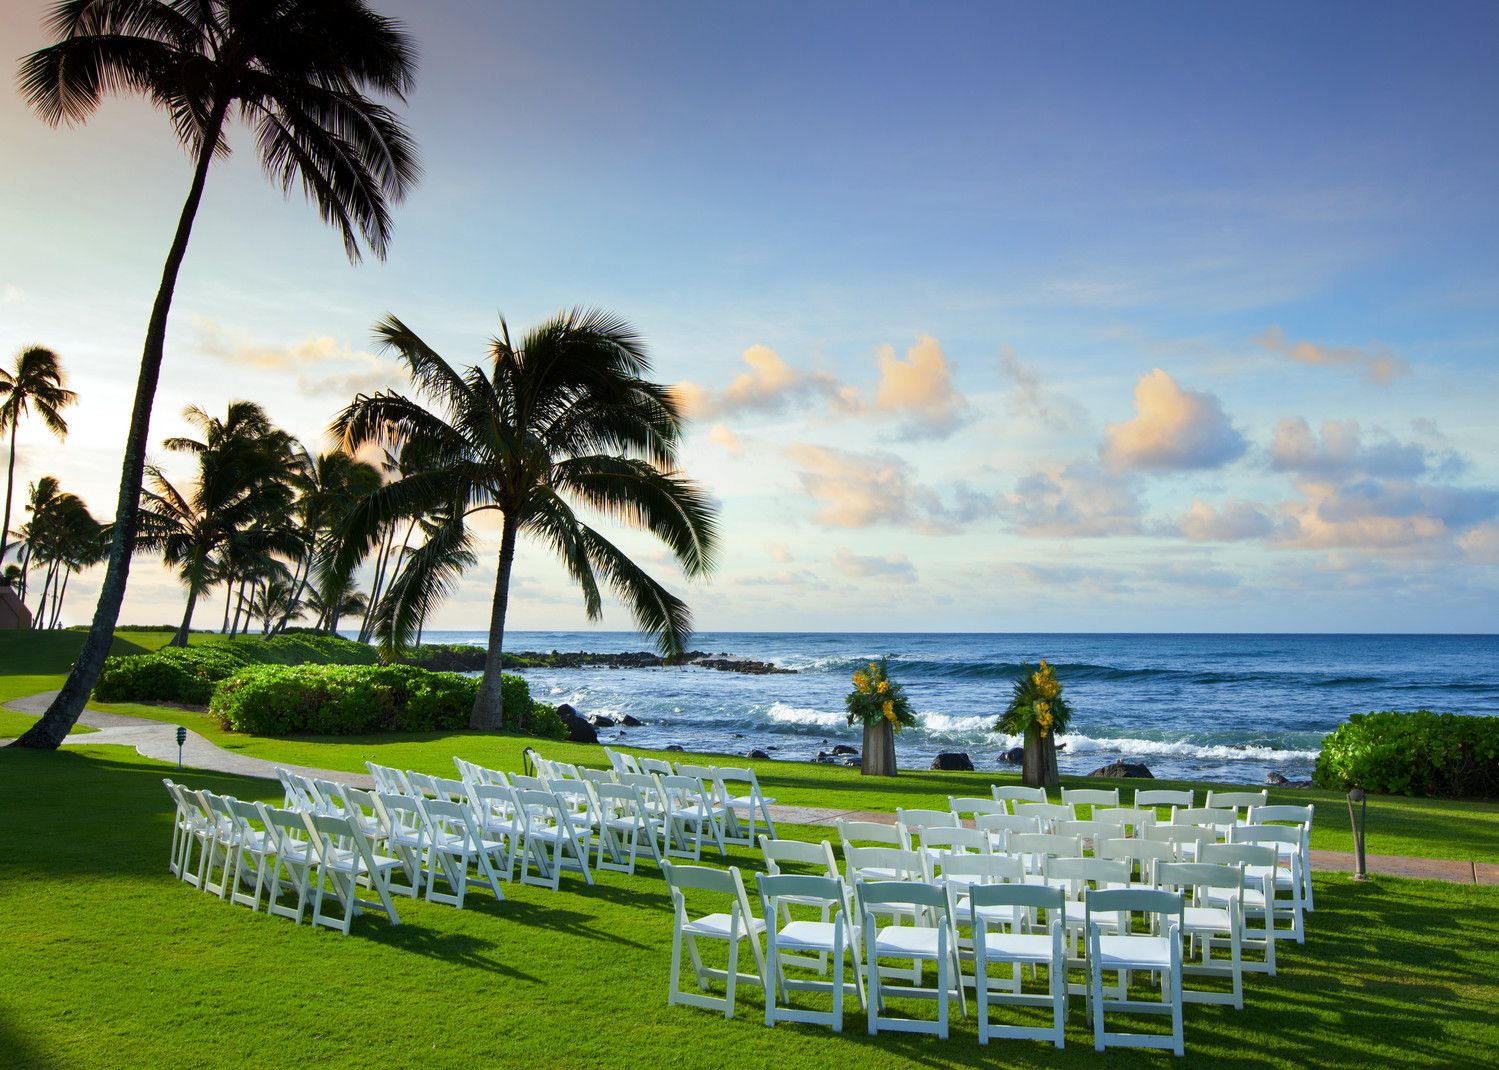 Kauai Beach Wedding - Ocean Cove Wedding